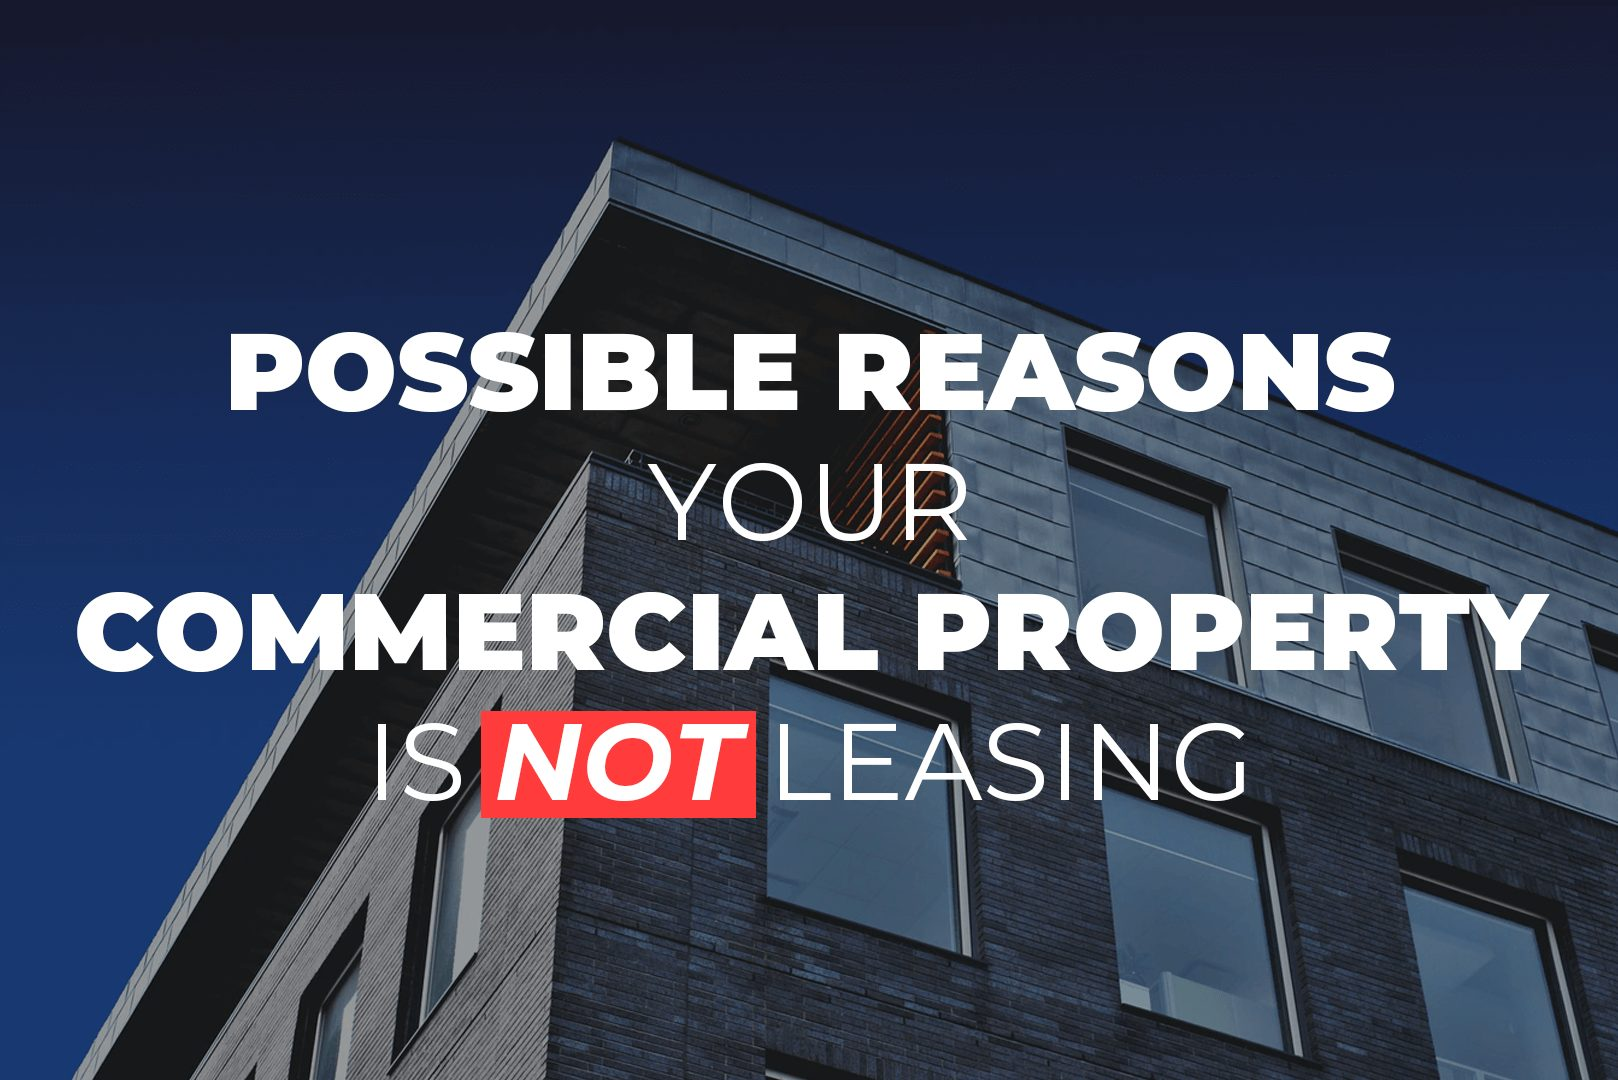 Possible Reasons Your Commercial Property Is Not Leasing